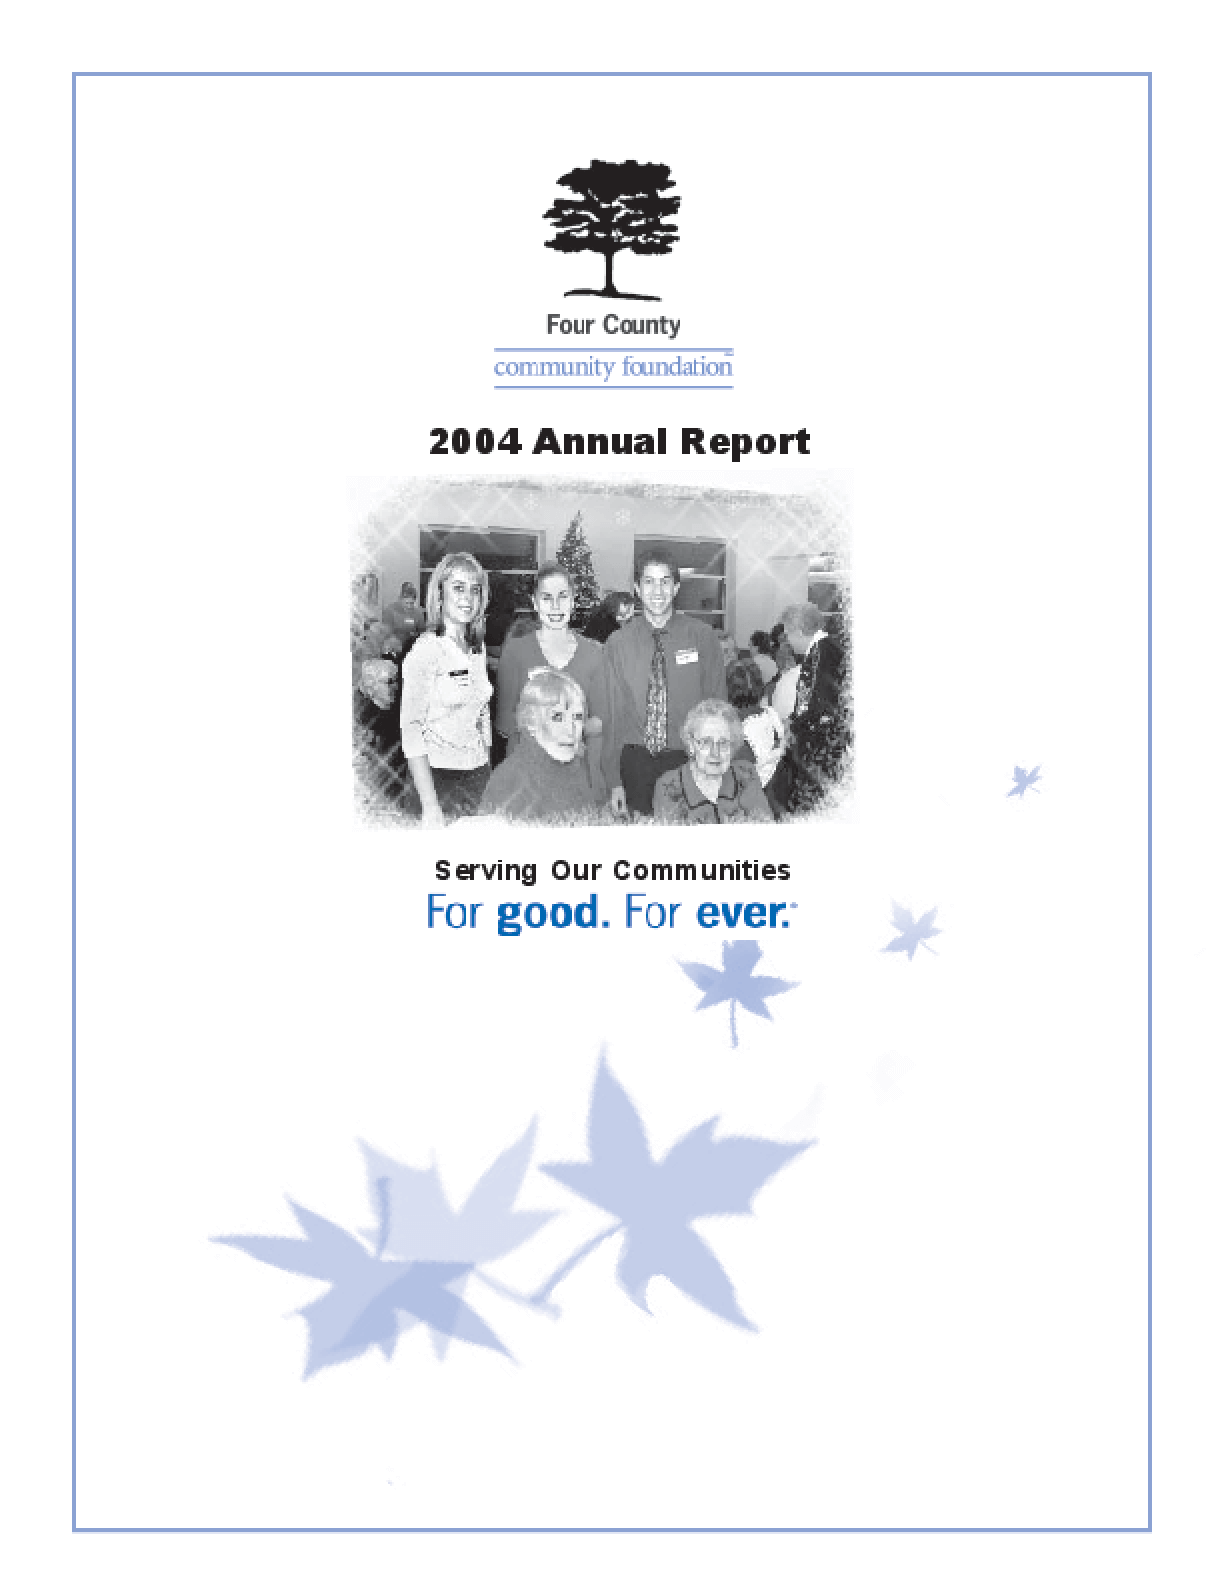 Four County Community Foundation - 2004 Annual Report